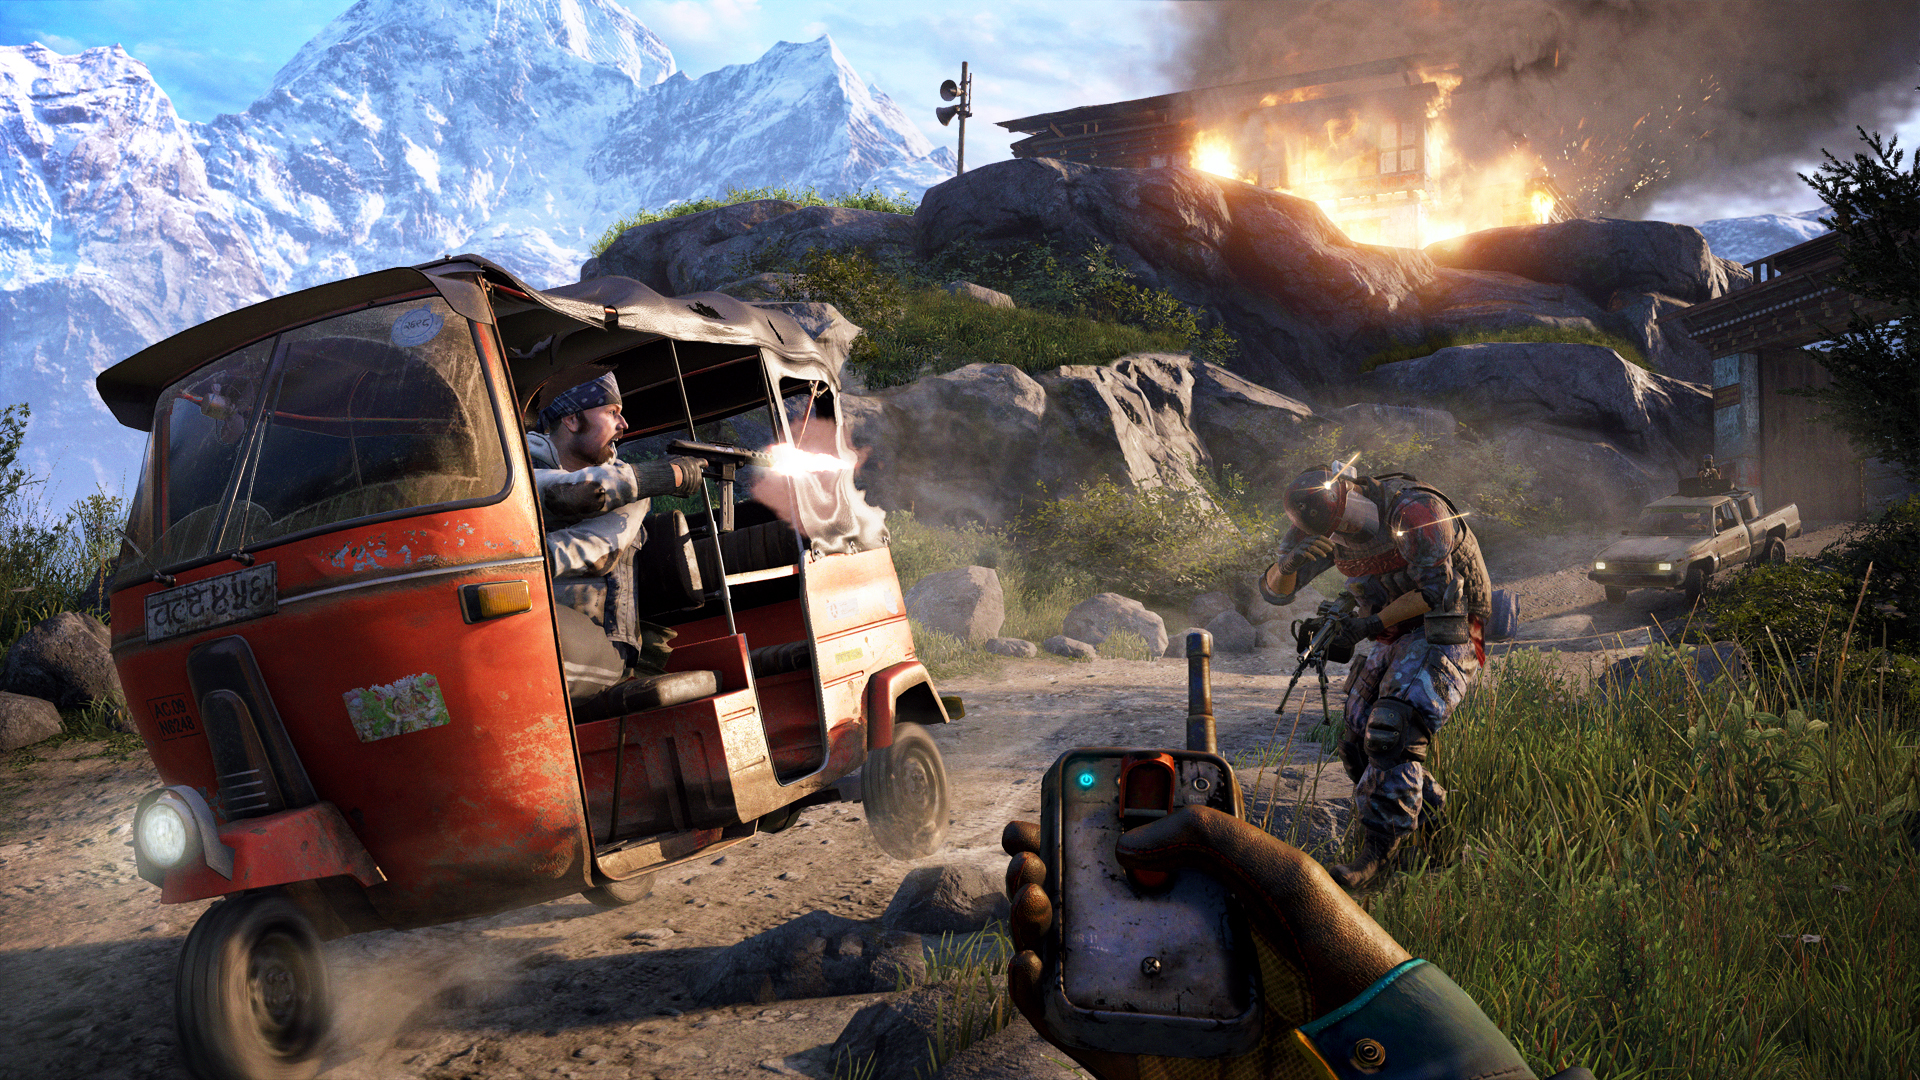 Far cry 4 sexual content review